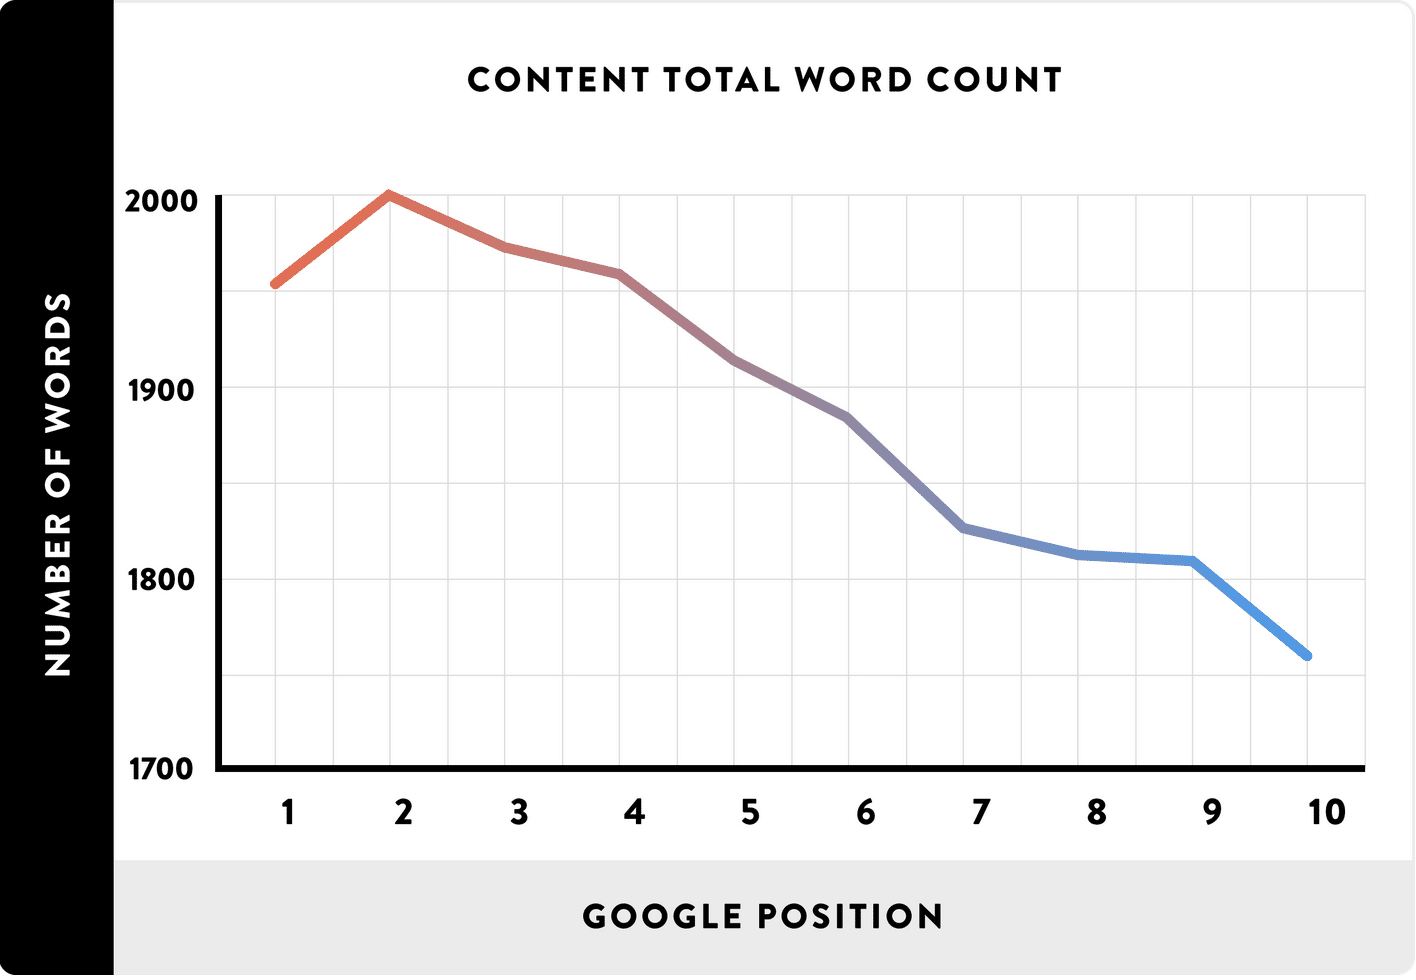 Word count vs Google position